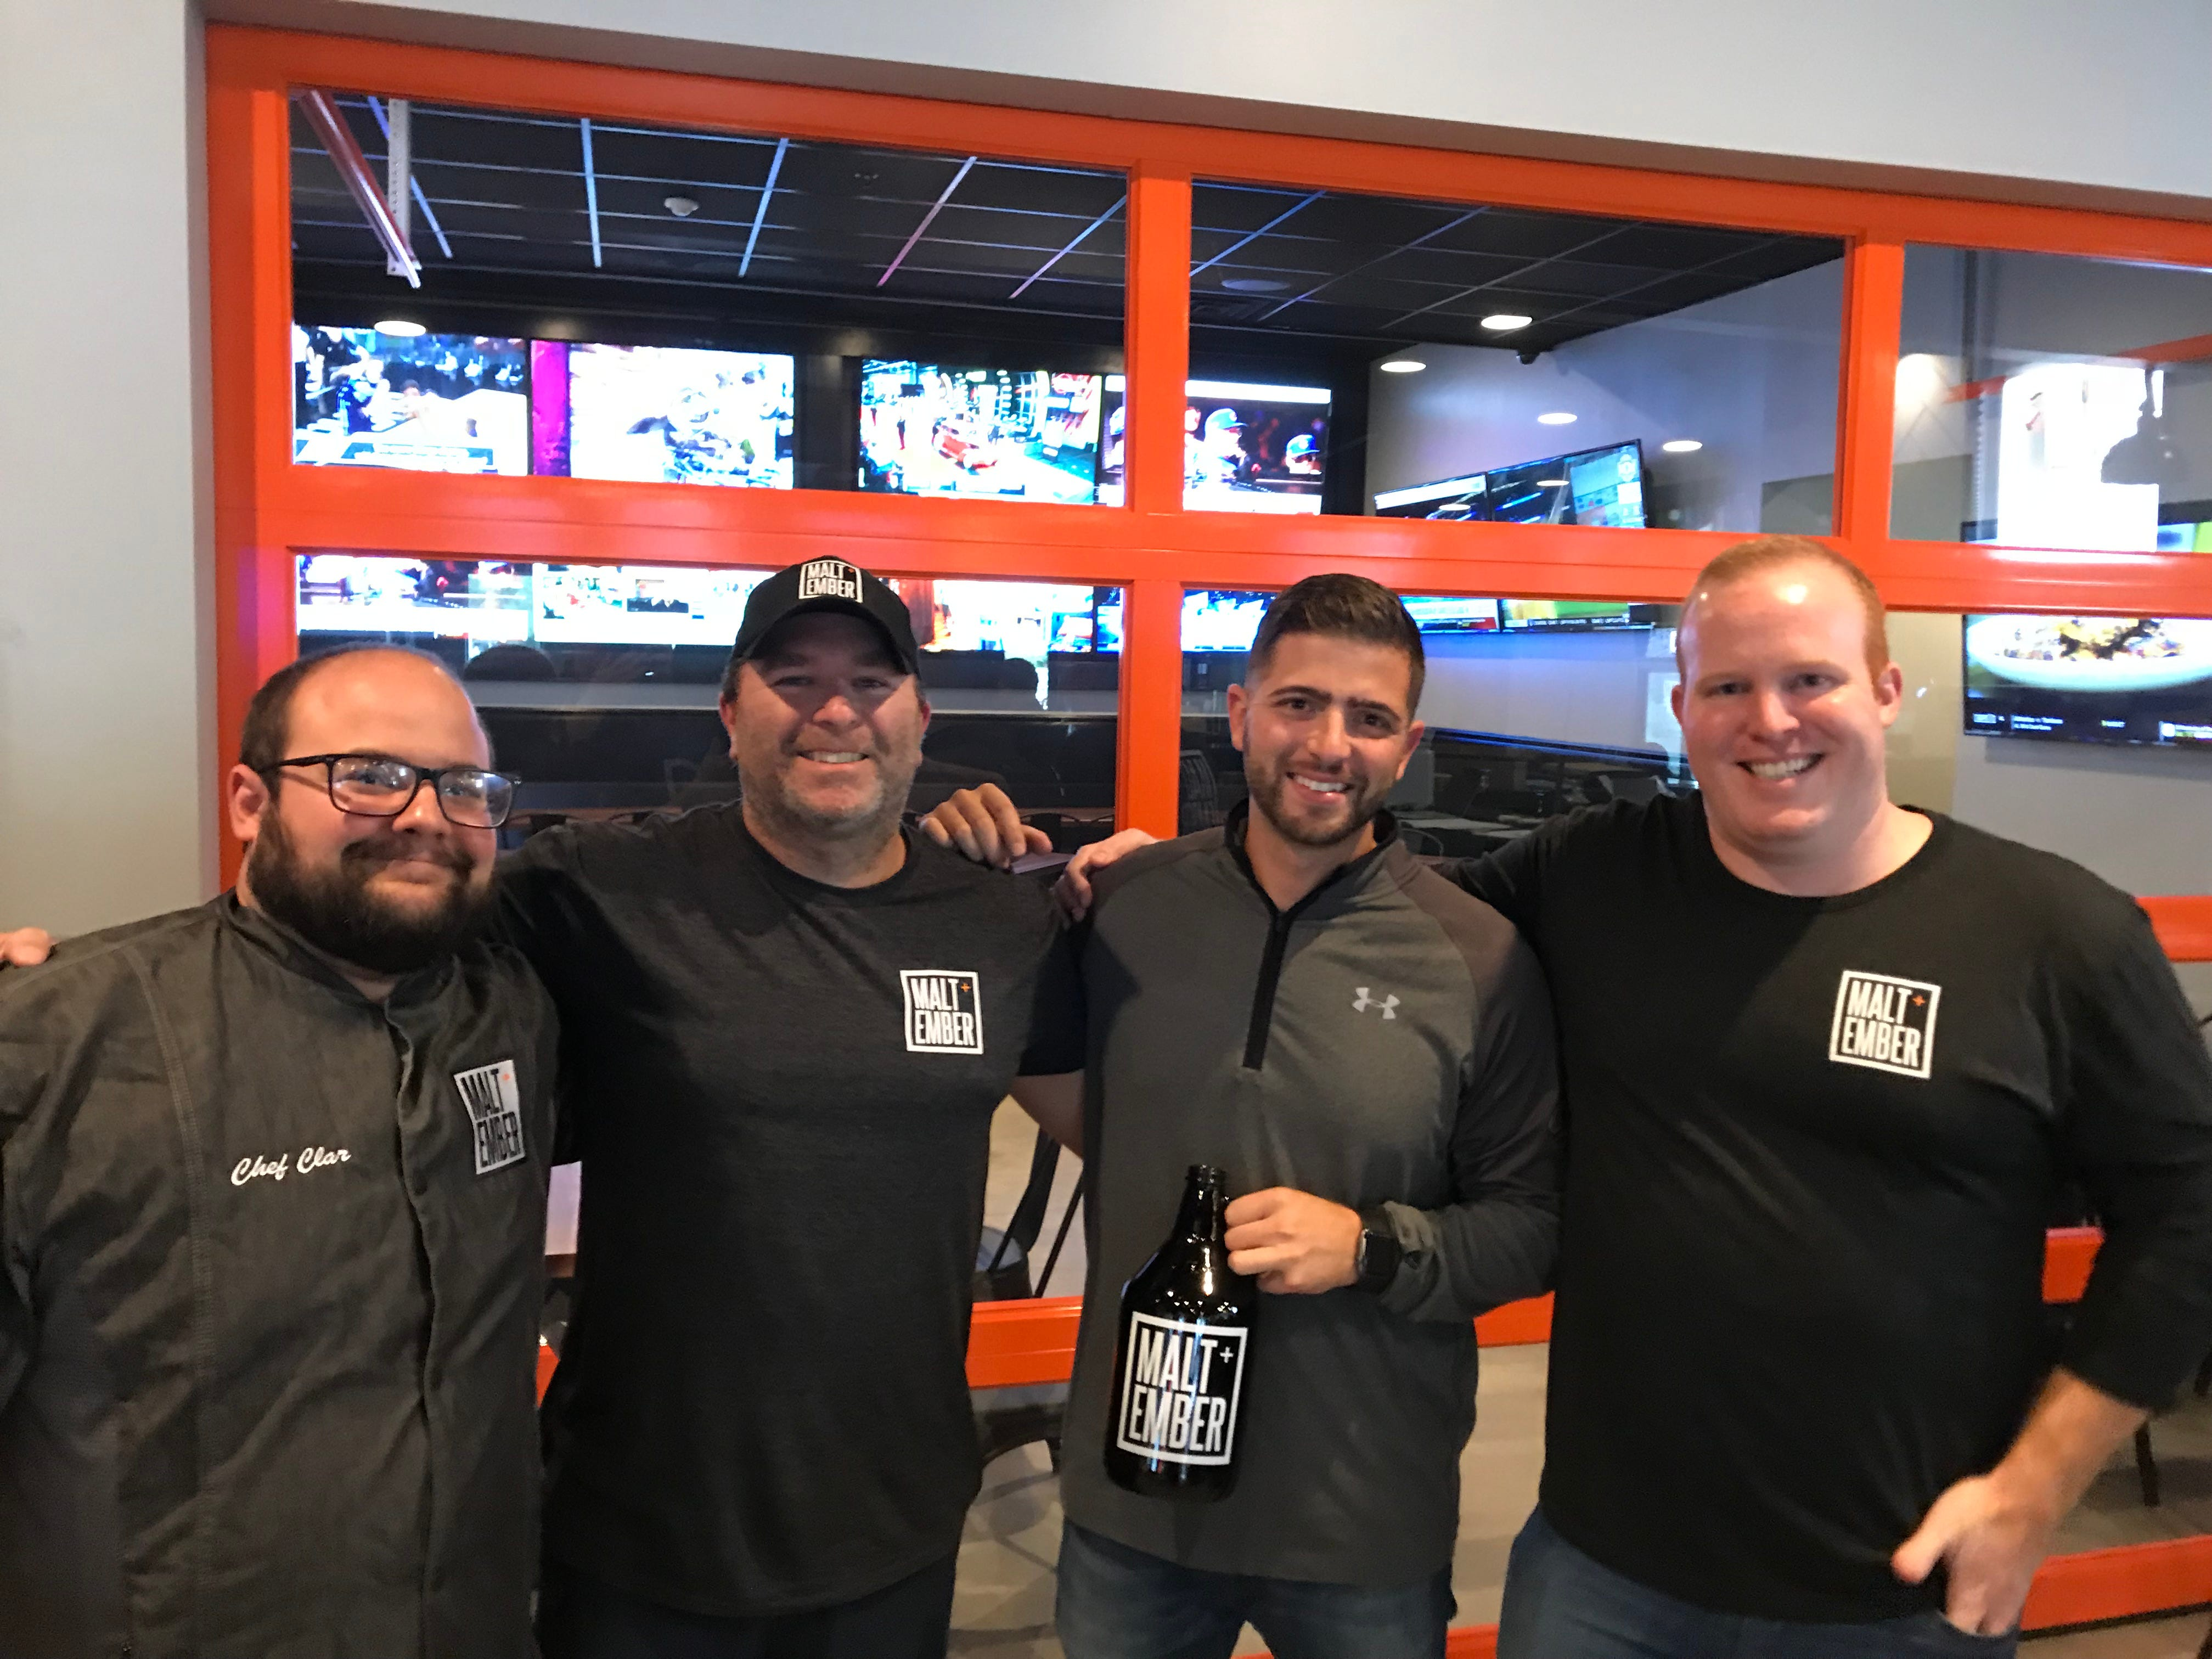 Malt + Ember owners, from left to right: Brendon Clar, Jeff Limuti, Louie Maier, and Jimmy Wilmot.